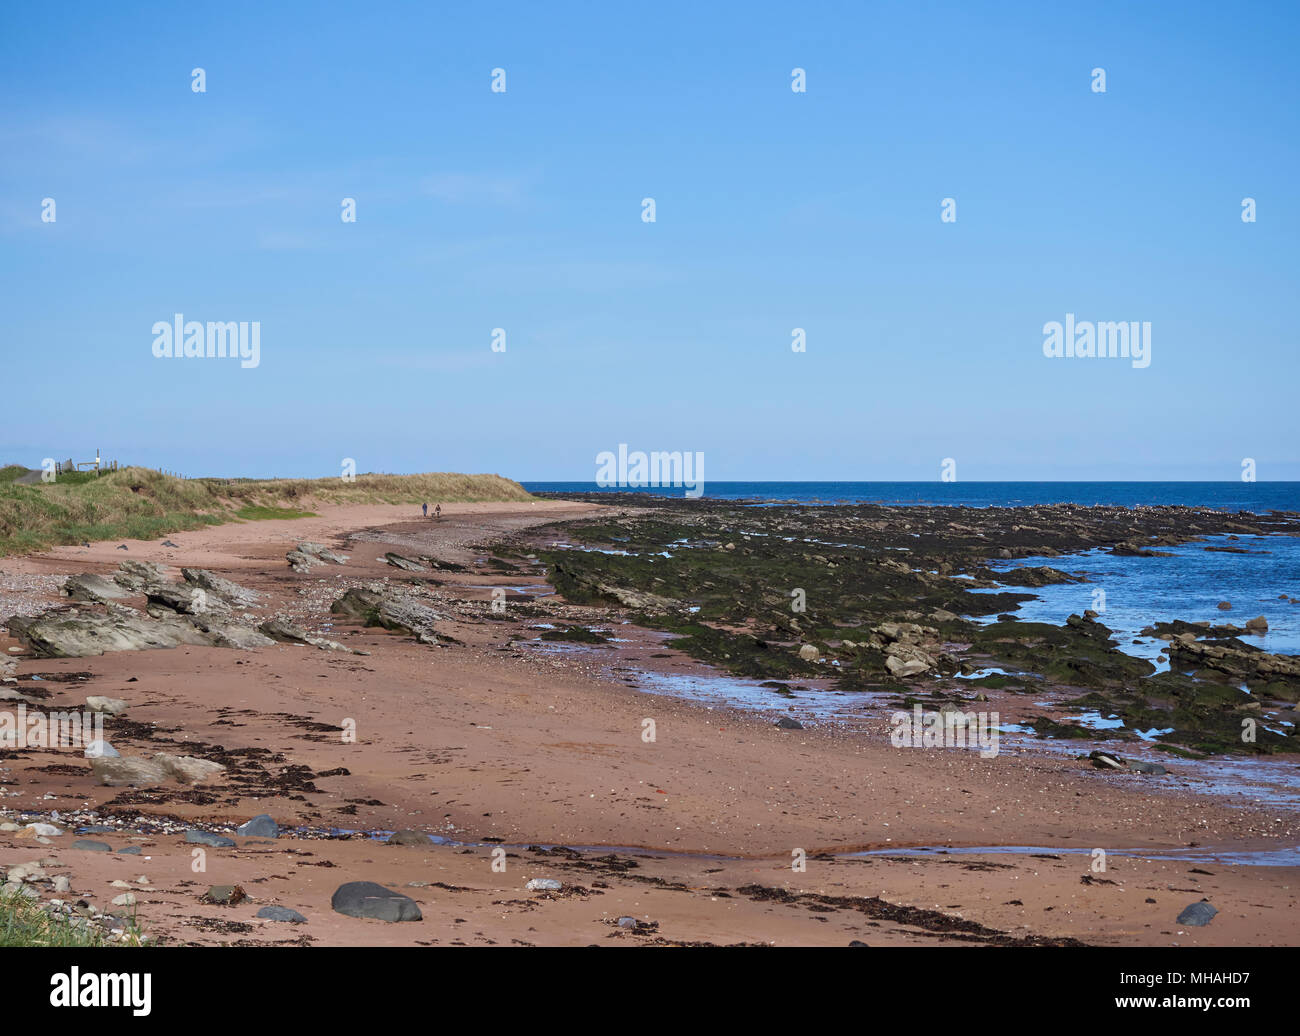 Dog Walkers in the distance on part of the Beach between East Haven and Arbroath, with the tide out and the Rock Strata exposed, Angus, Scotland. Stock Photo